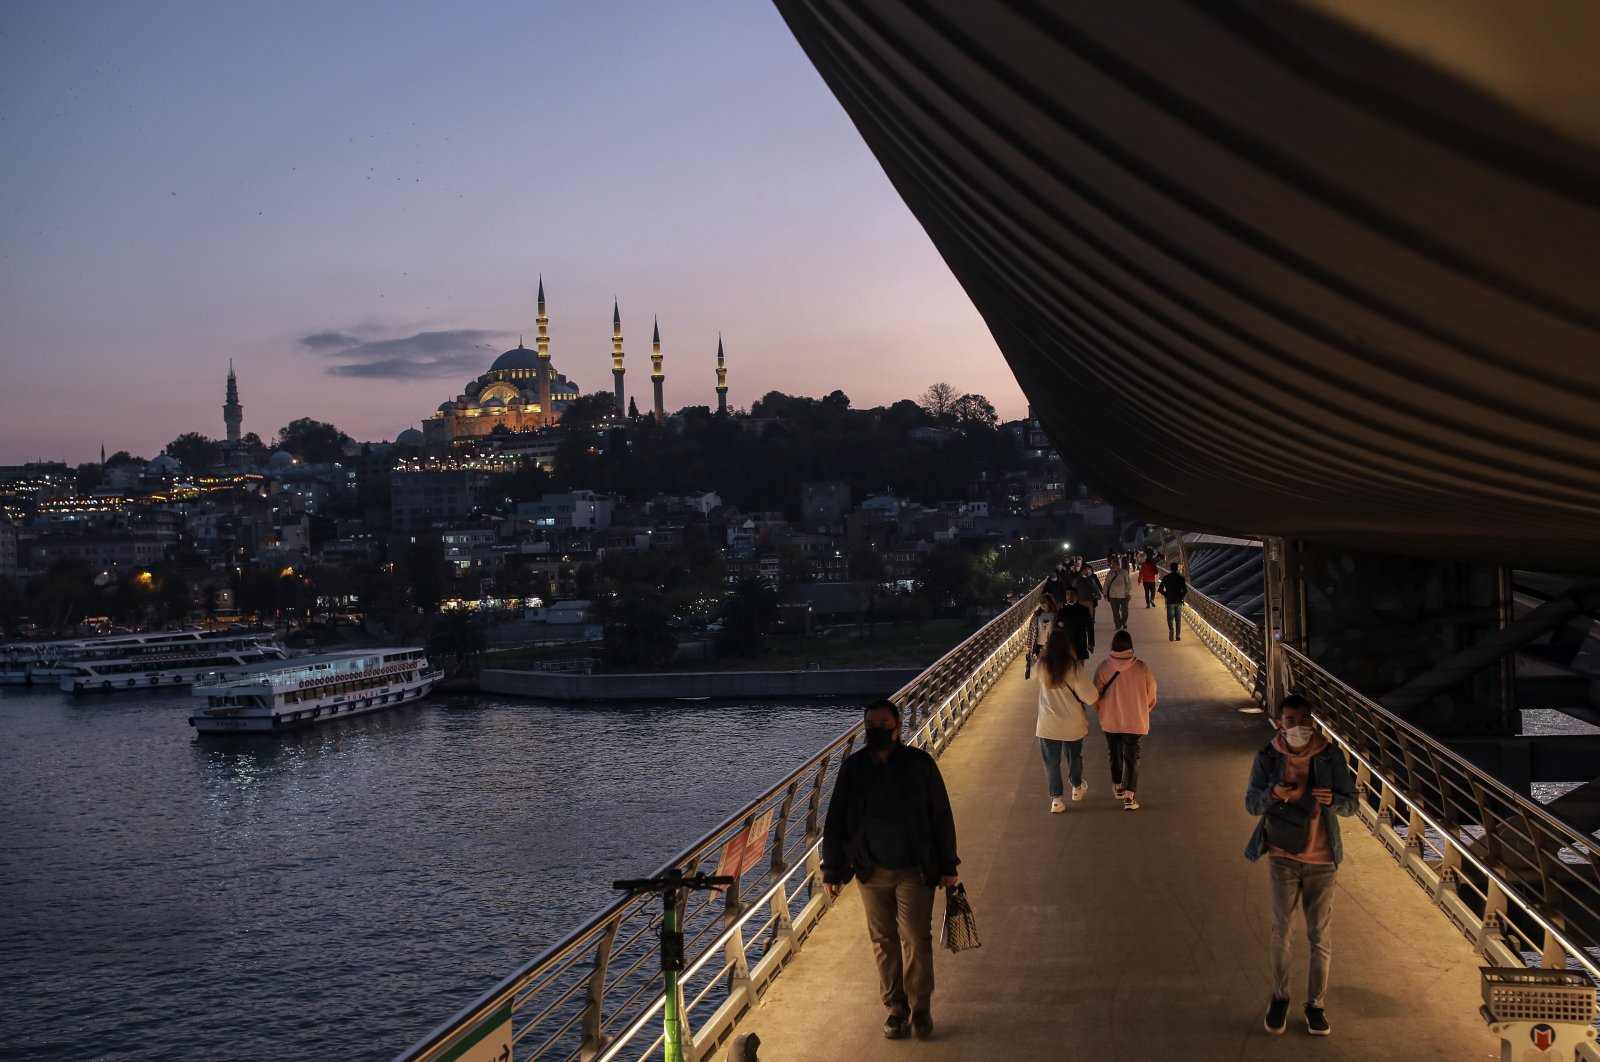 Backdropped by the Süleymaniye Mosque, people wearing protective masks to help prevent the spread of the coronavirus walk on the Golden Horn Bridge in Istanbul, Turkey, Nov. 16, 2020. (AP Photo)